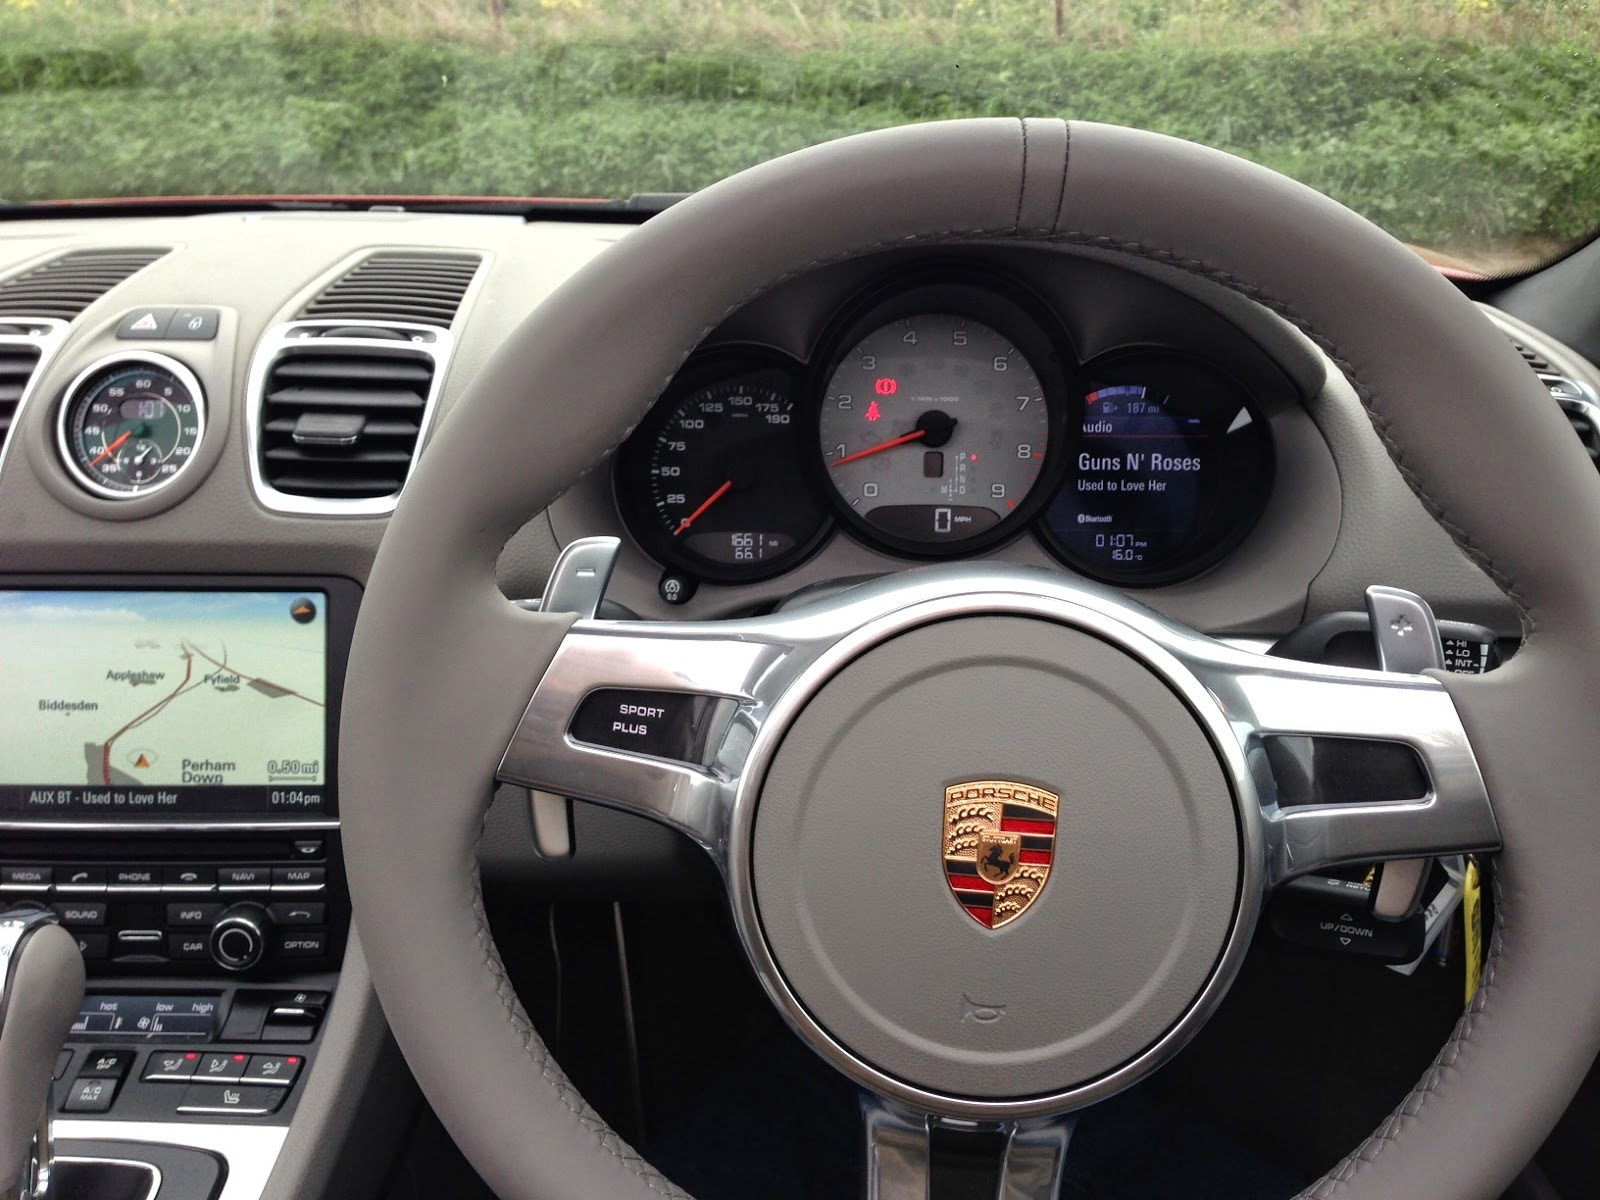 2014 Porsche Boxster S instrument binnacle